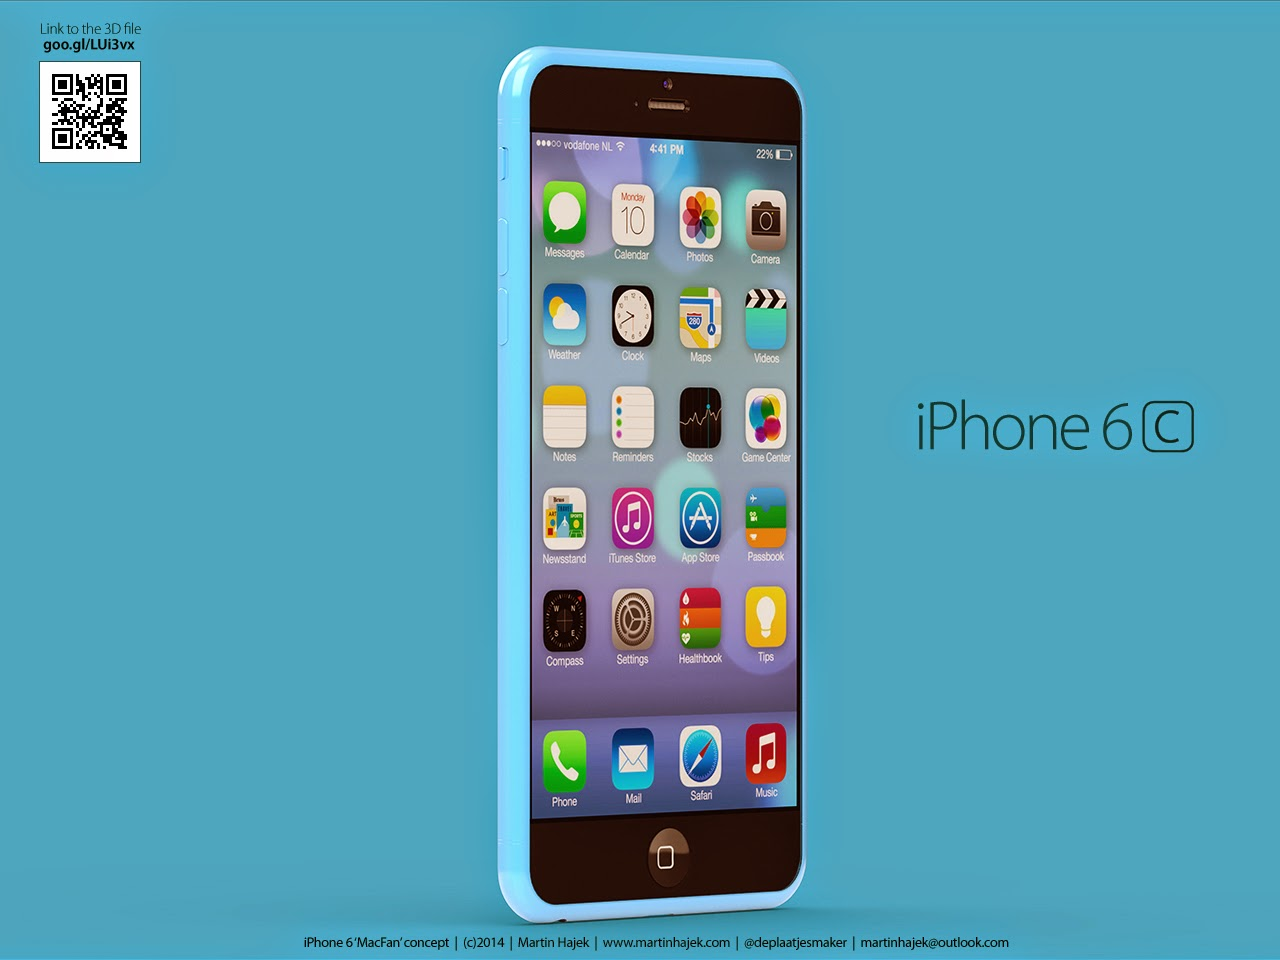 Yeah, it looks more like a C version: IPHONE 6 S OR C?